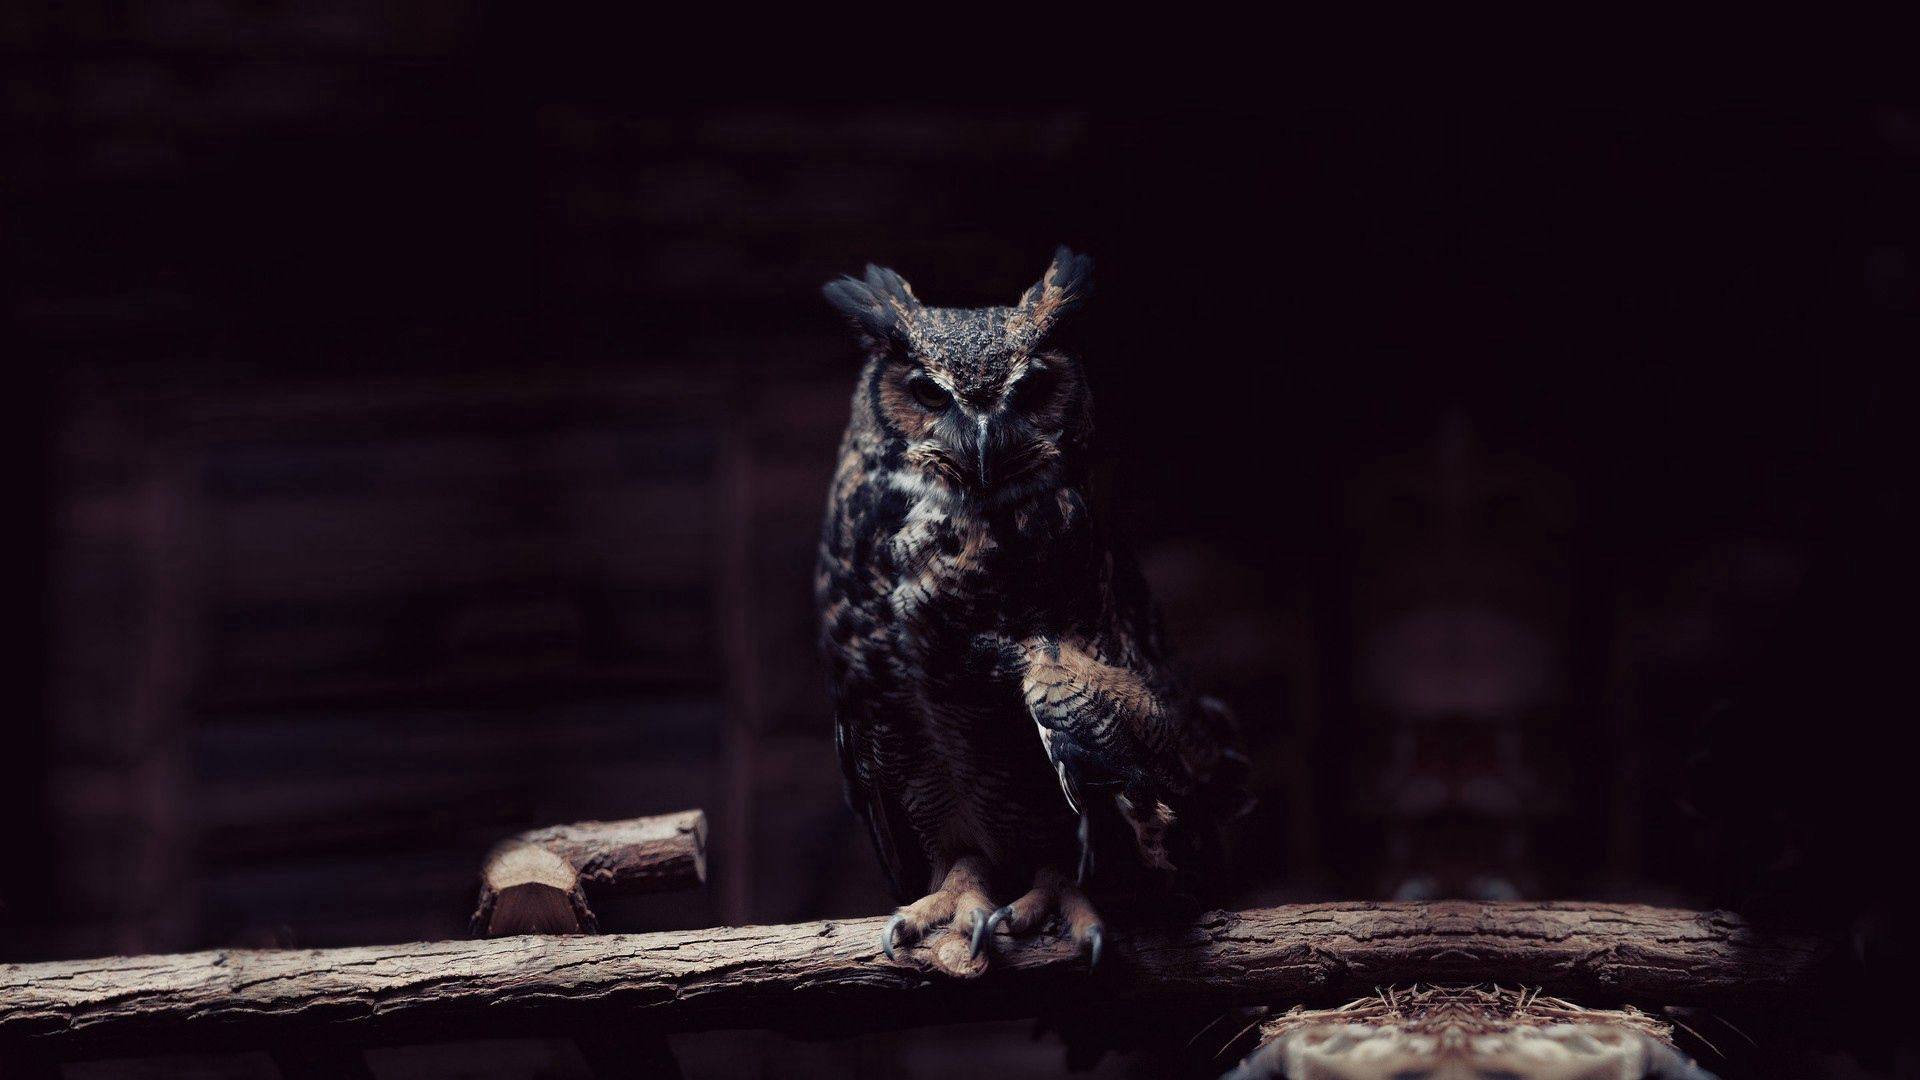 88214 download wallpaper Animals, Owl, Dark, Sit, Branch, Shadow screensavers and pictures for free